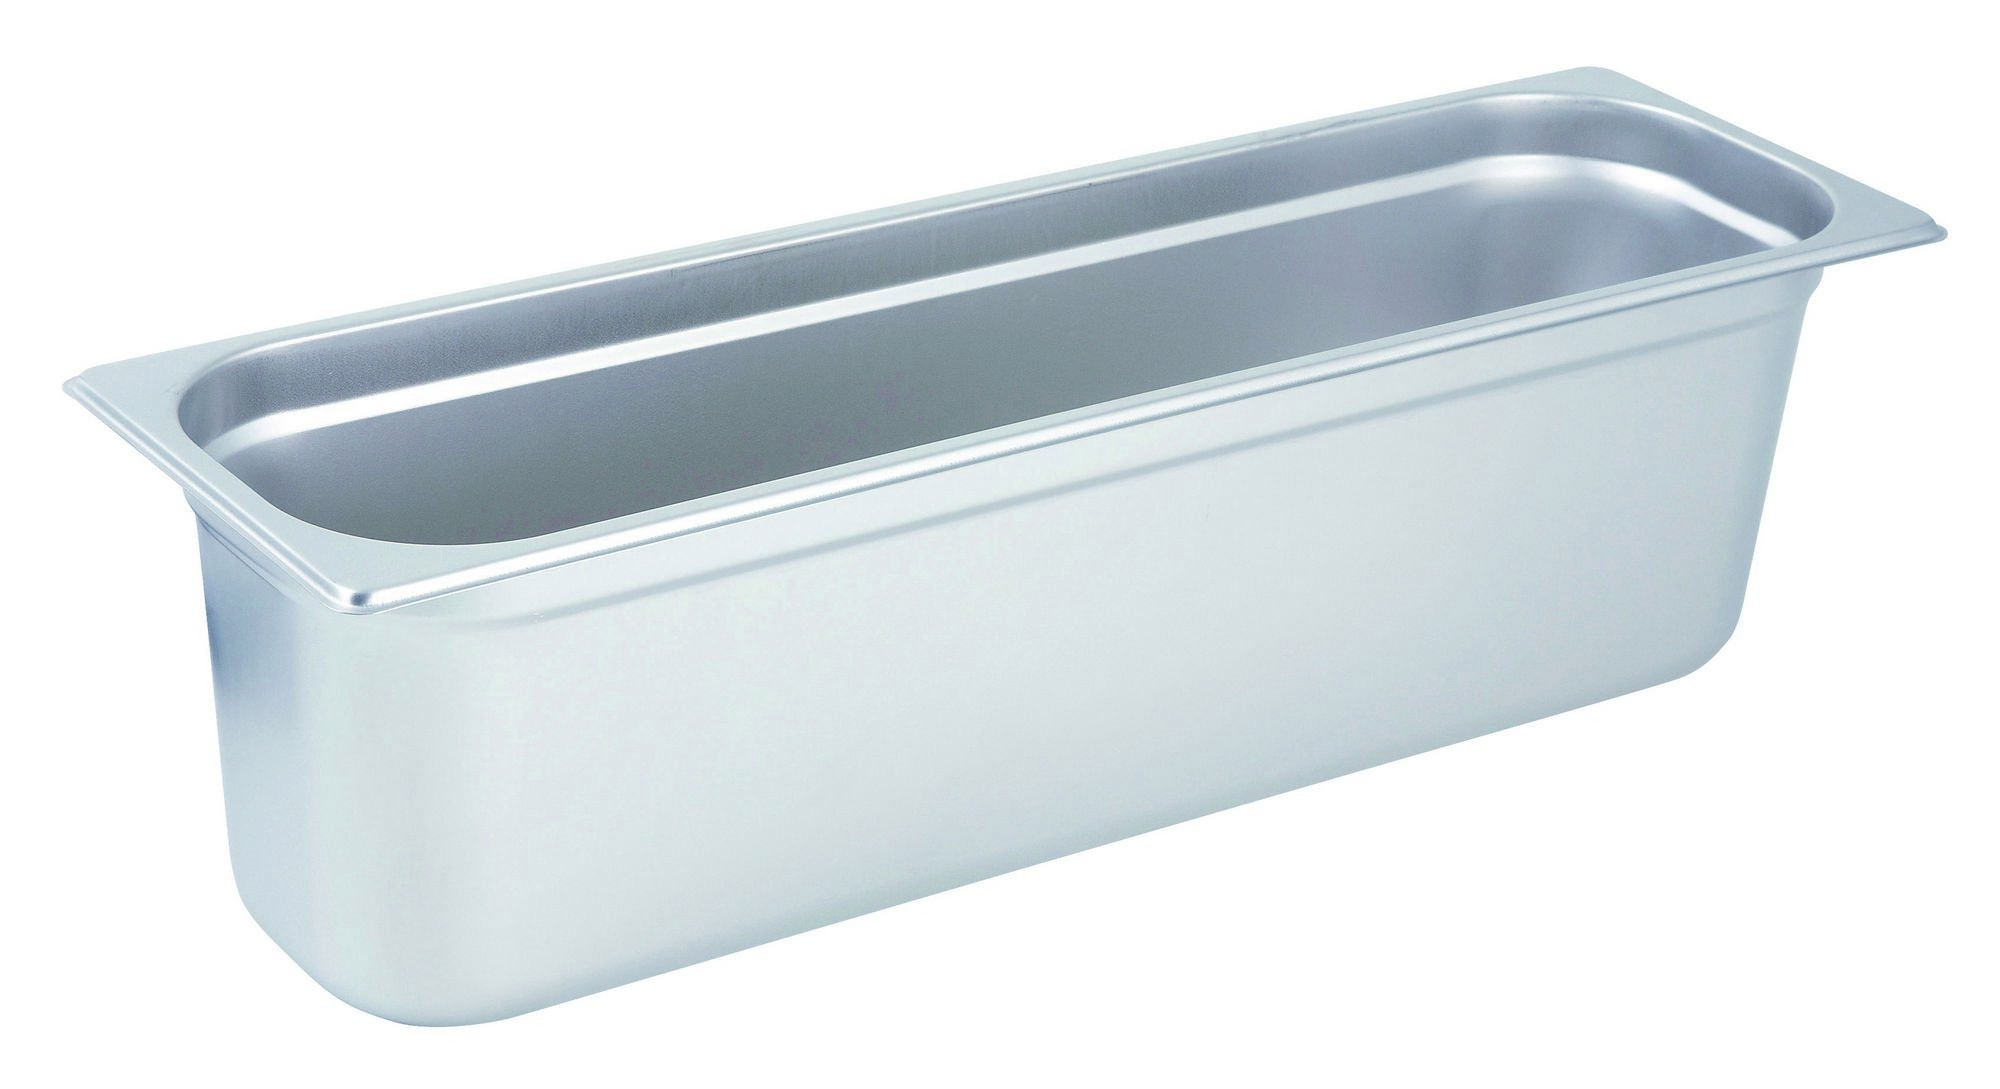 "Winco Spjl-6hl Half-Long Size Anti-Jam 25 Gauge Steam Table Pan 6"" Deep"